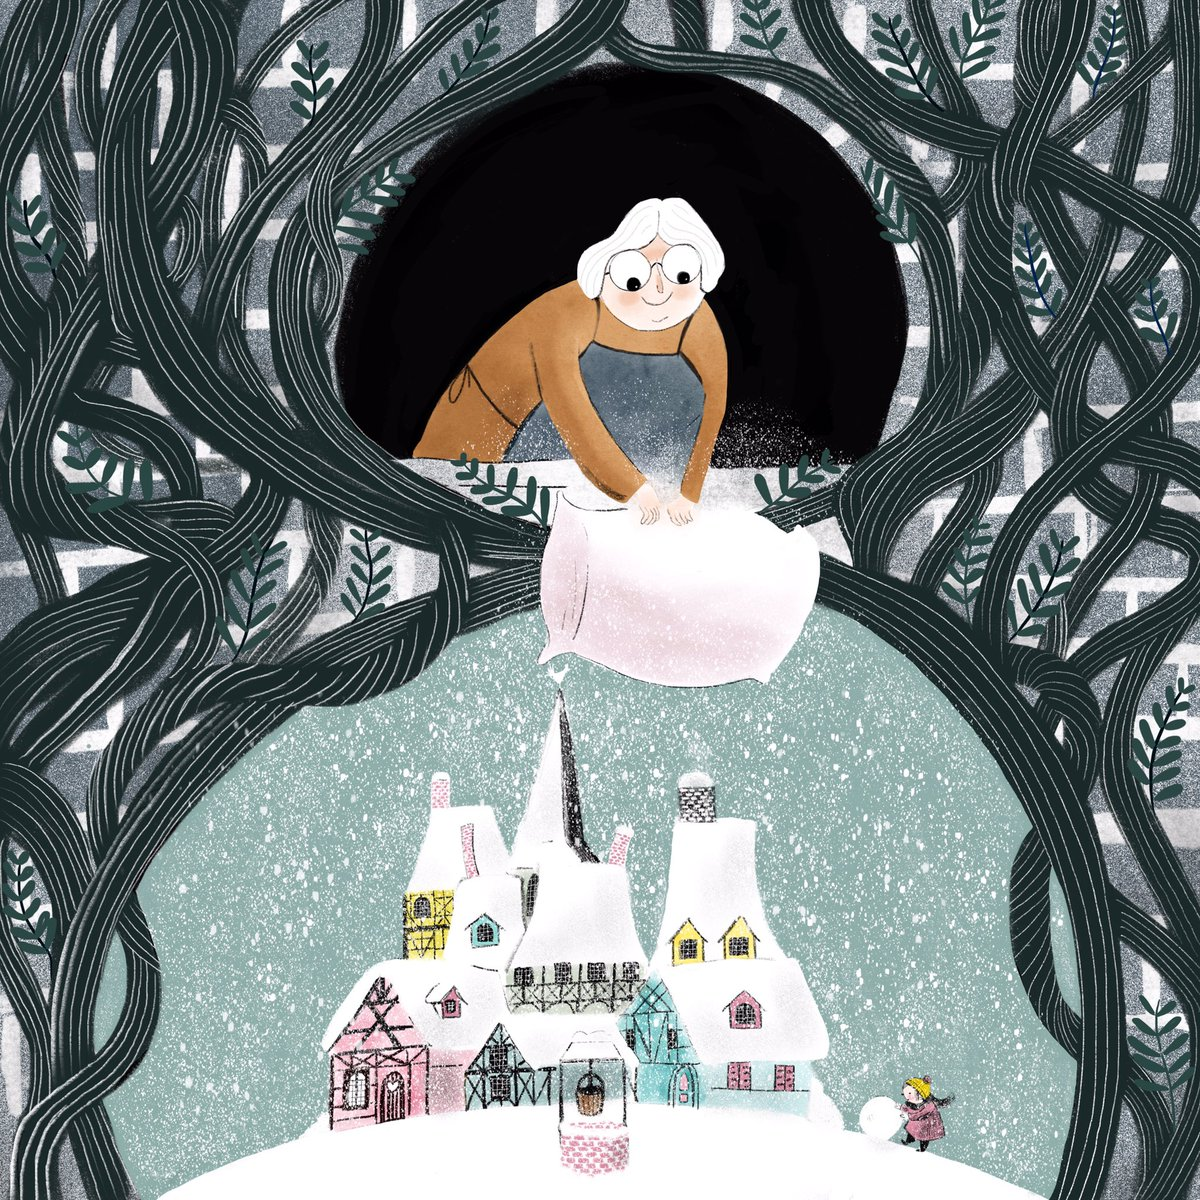 Vrouw/Frau Holle adding some #magic  to #folktaleweek! Head over to Instagram if you want to join #folktaleweek2018. You still can! #kidlitart #childrensbookillustration #childrensillustration #folktales<br>http://pic.twitter.com/EulQ2vTSqk